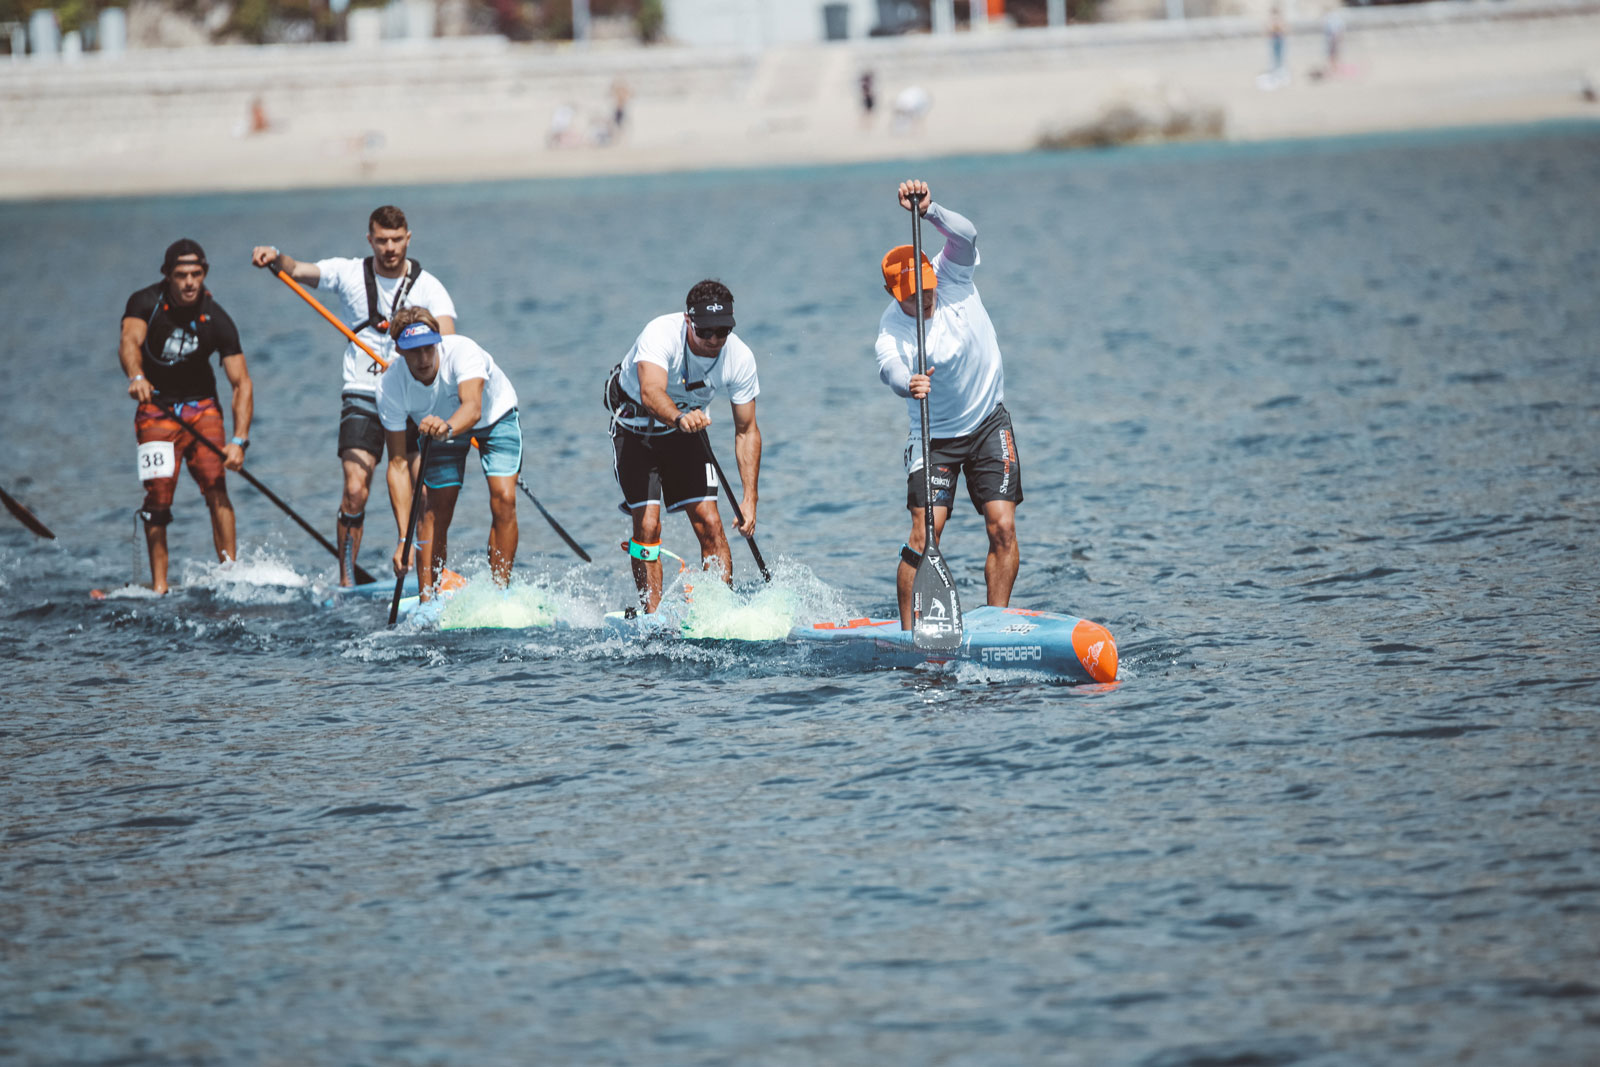 Starboard-SUP-Stand-Up-Paddleboarding-Michael-Booth-Fiona-Wylde-Win-2019-Azur-Paddle-Days-Race-Event-France-Boothy-leads-pack